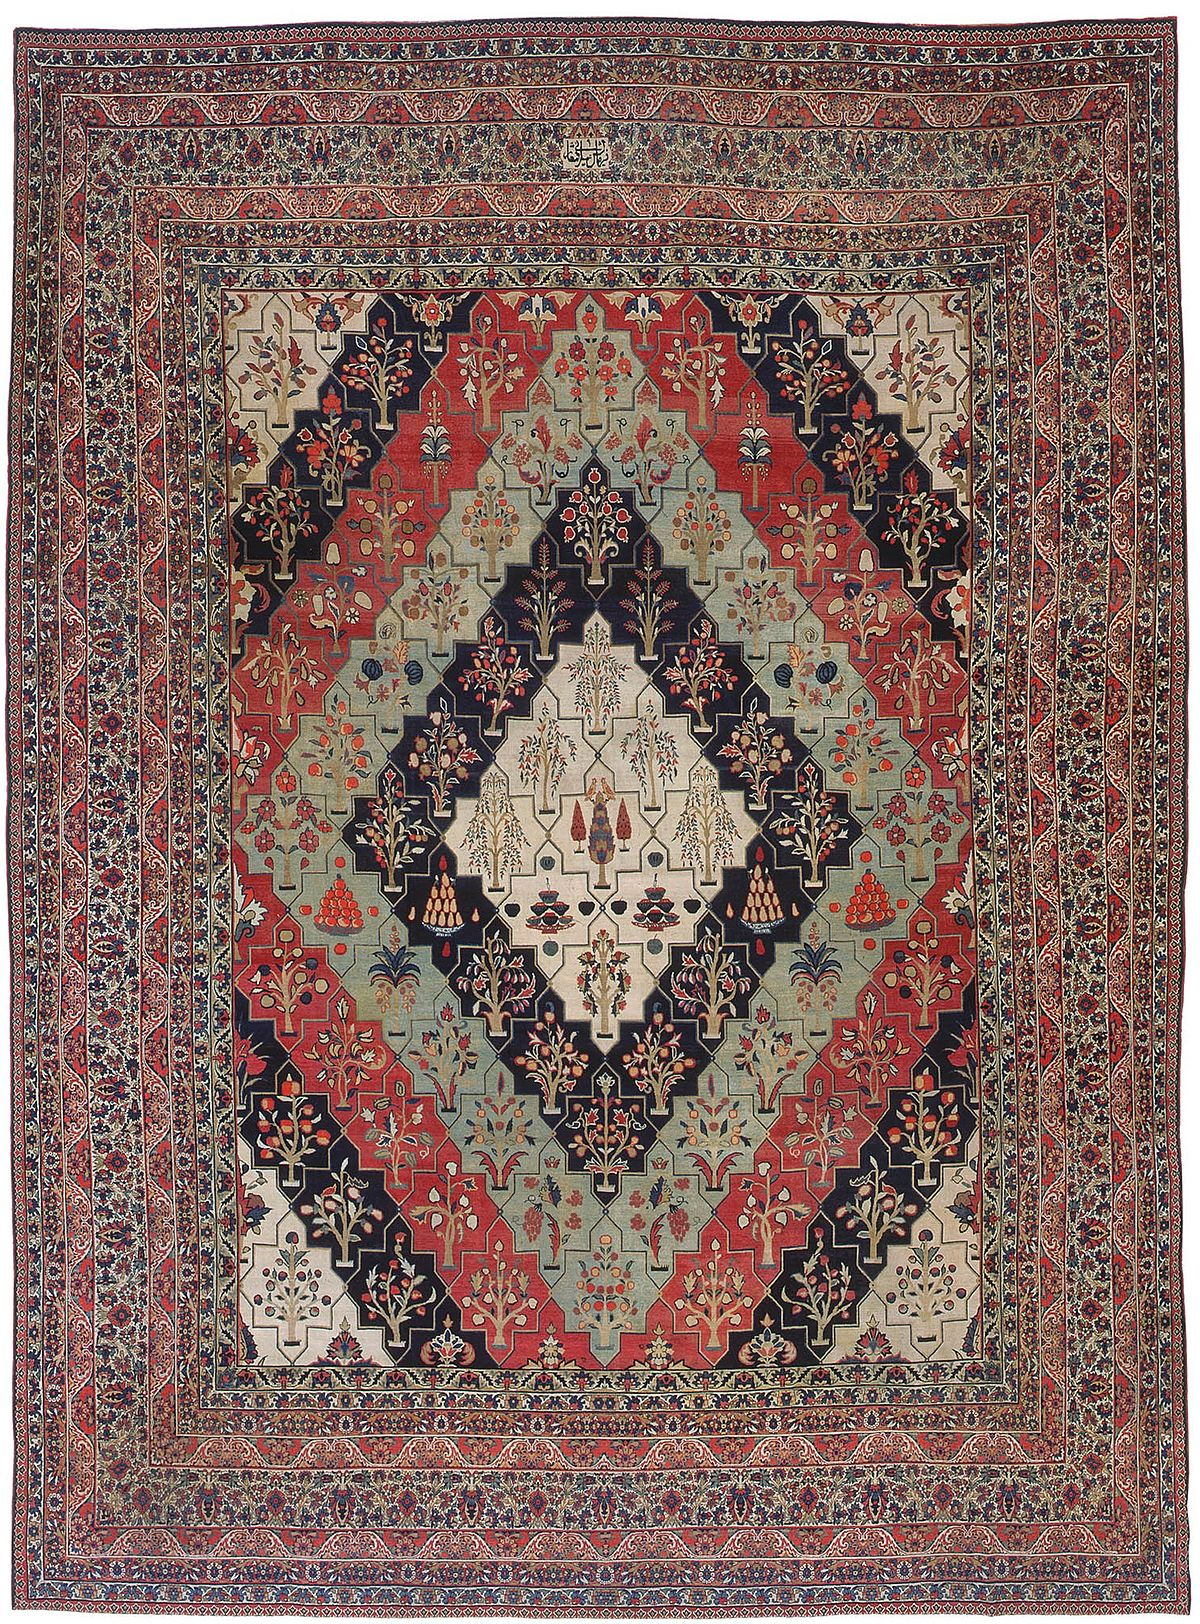 Kerman Carpet Wikipedia